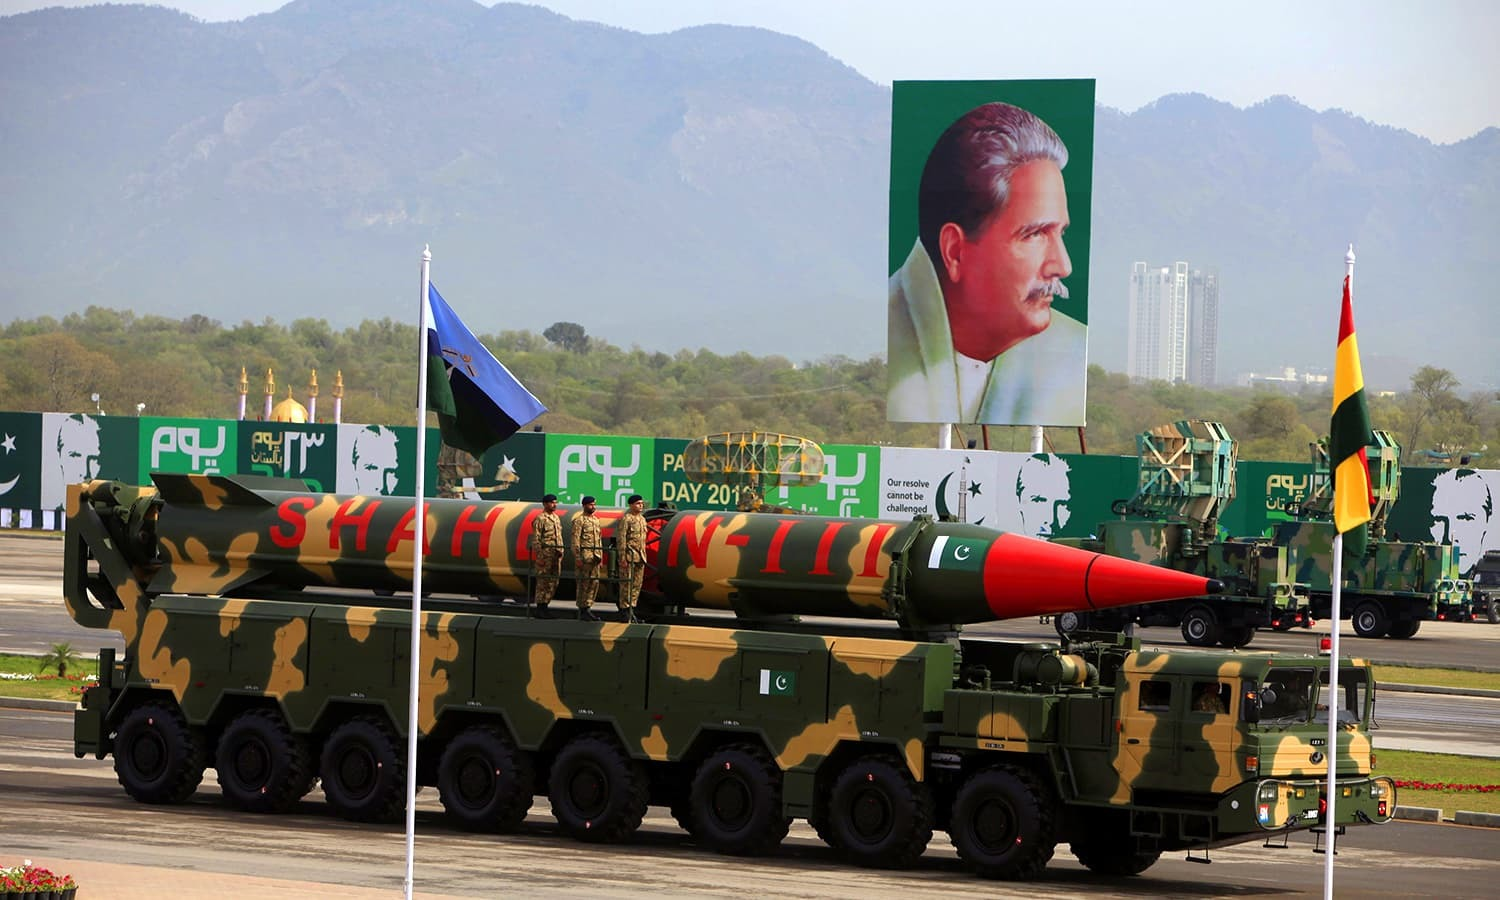 The Shaheen-III missile is displayed during the Pakistan Day parade in Islamabad, Pakistan, March 23, 2016. — Reuters